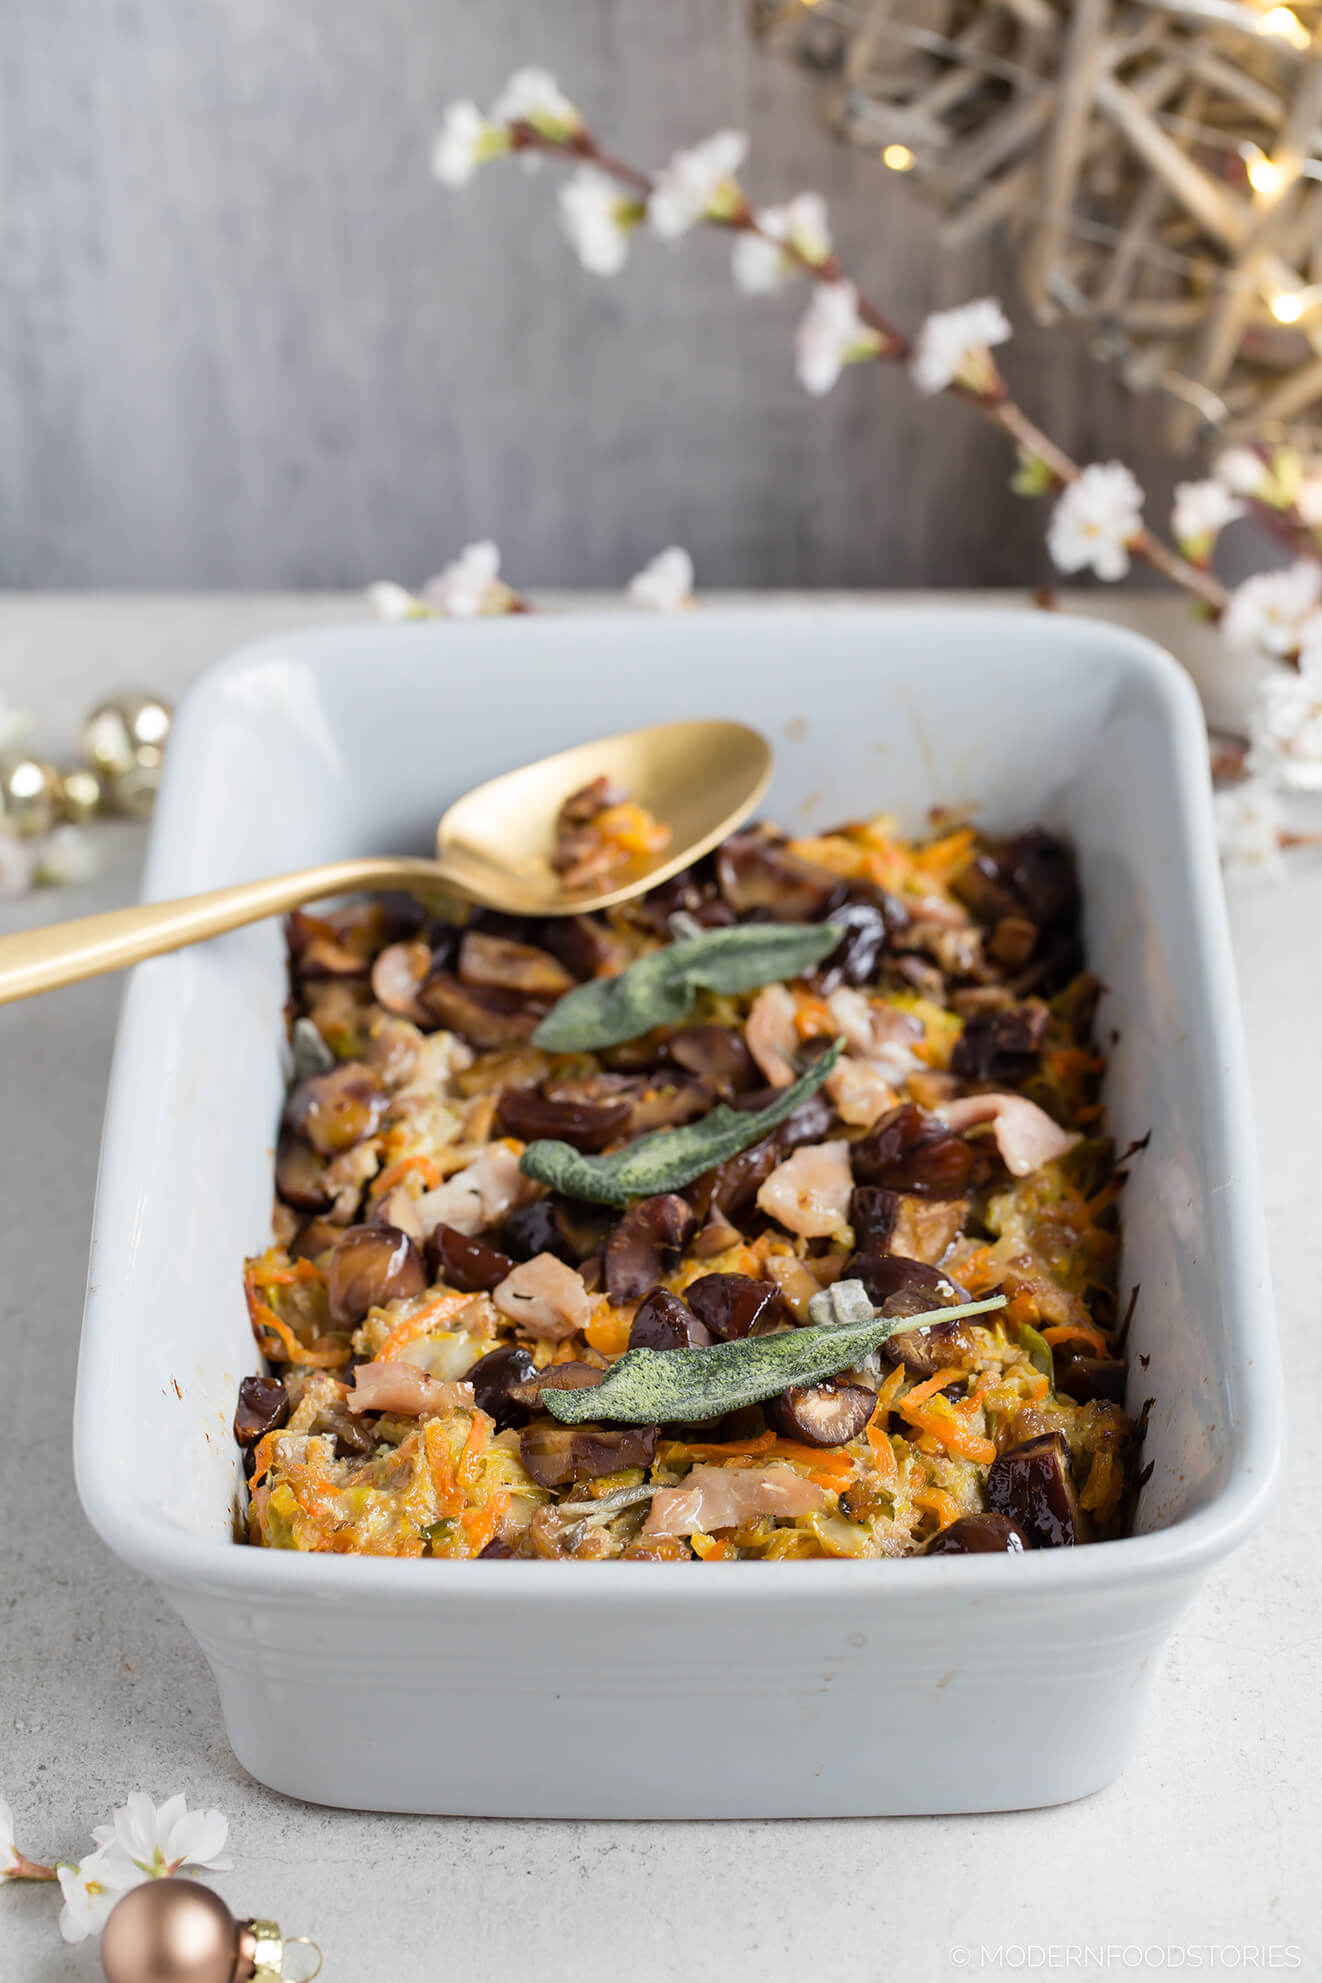 Keto stuffing, Paleo stuffing with pork and sage, grain free stuffing, stuffing recipe, pork and sage stuffing, healthy stuffing, Paleo Crust, Modern Food Stories, gluten free stuffing, Paleo Christmas recipes